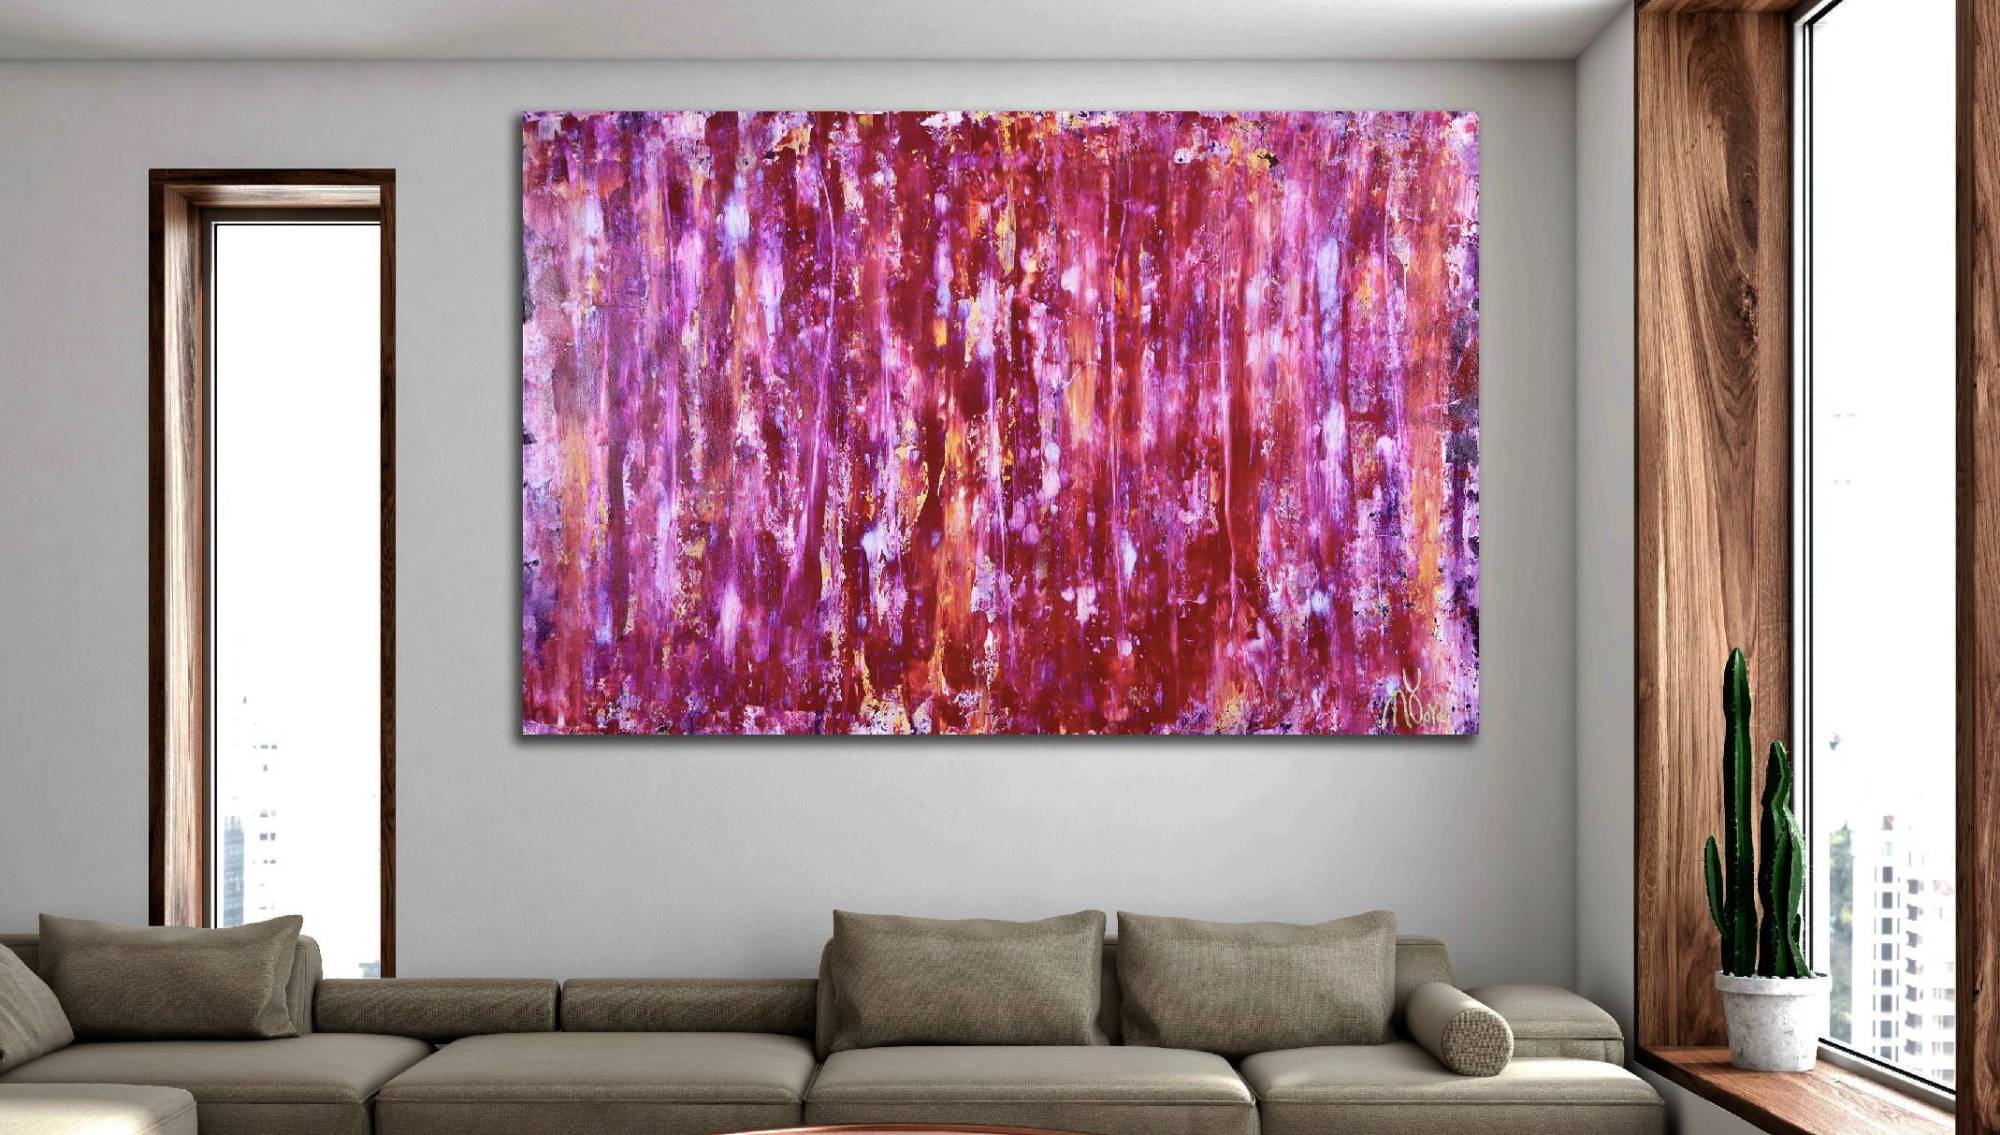 Room View - Iridescent Coral Spectra (2020) by Nestor Toro